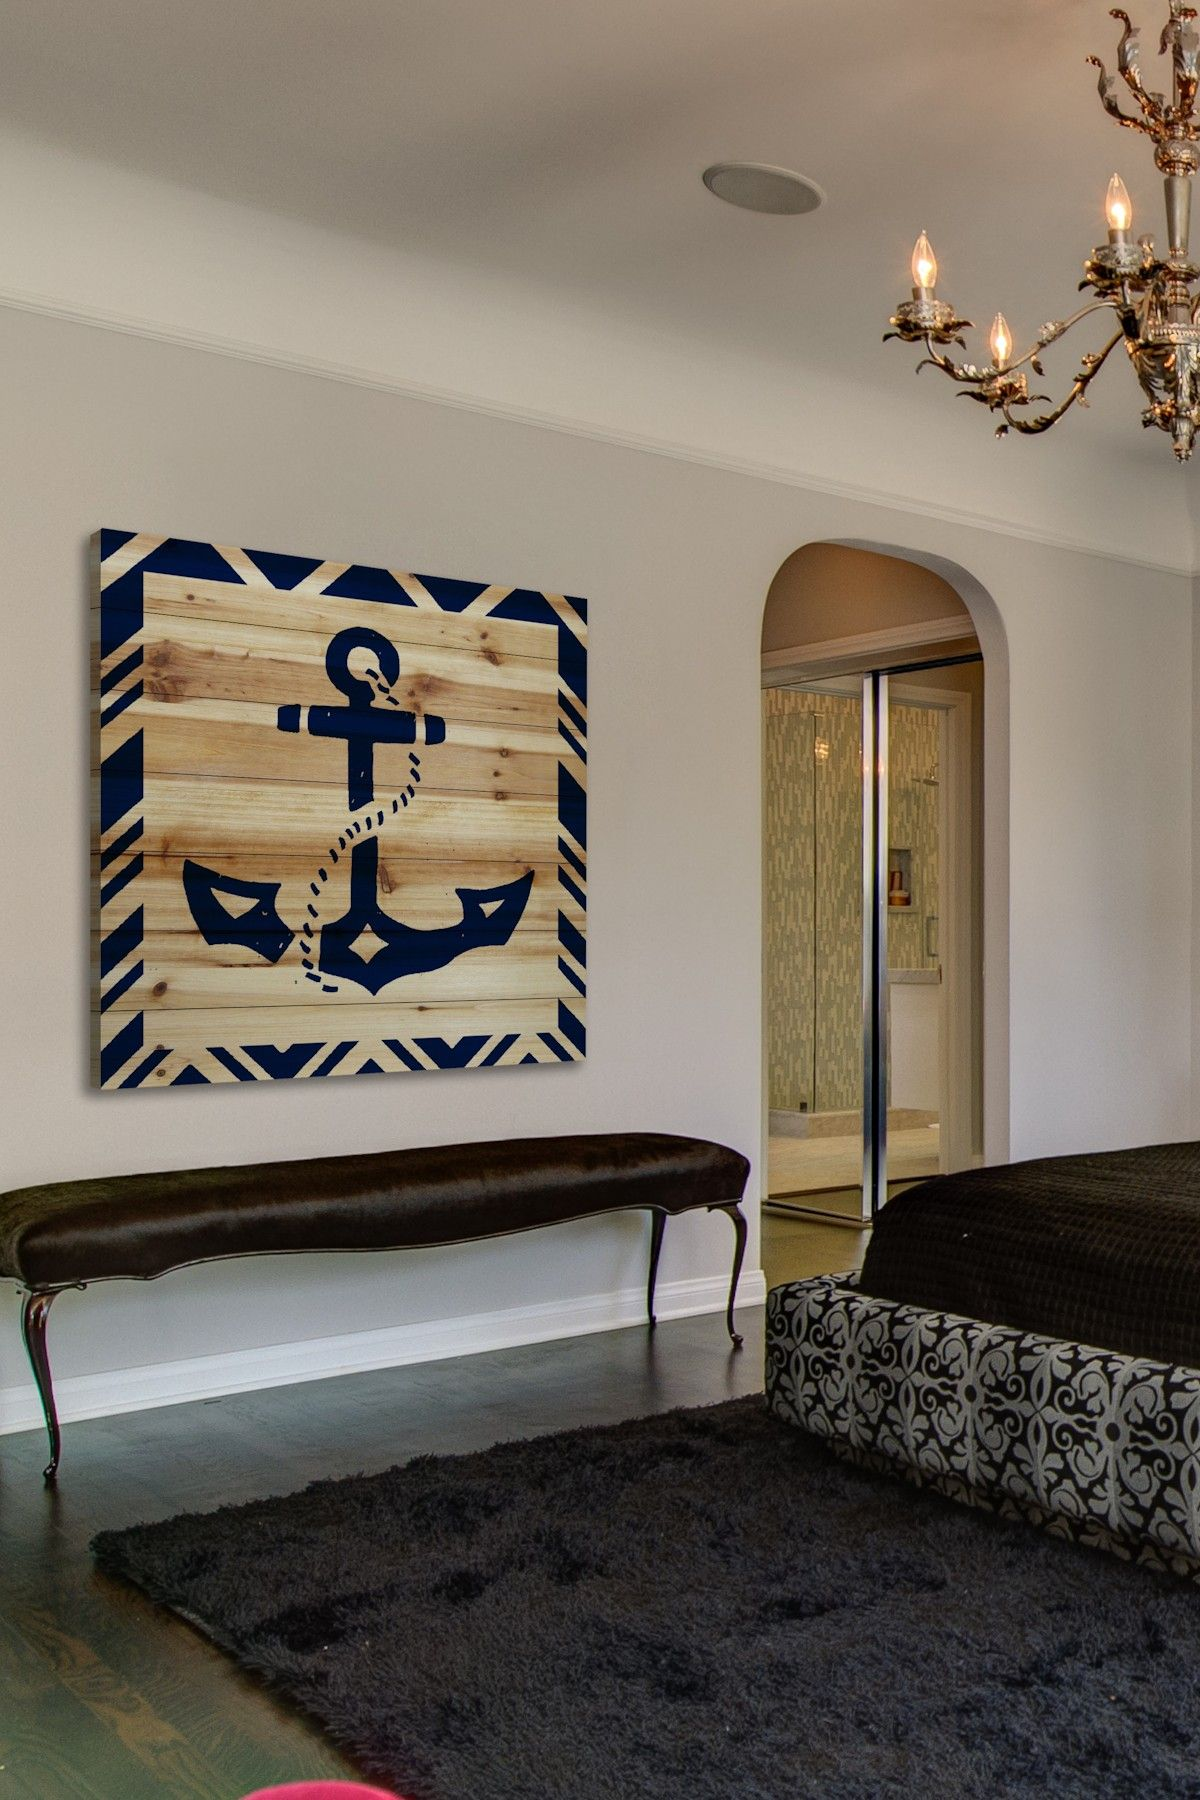 Diy idea for a large nautical wall decor piece anchor painted on wood panels